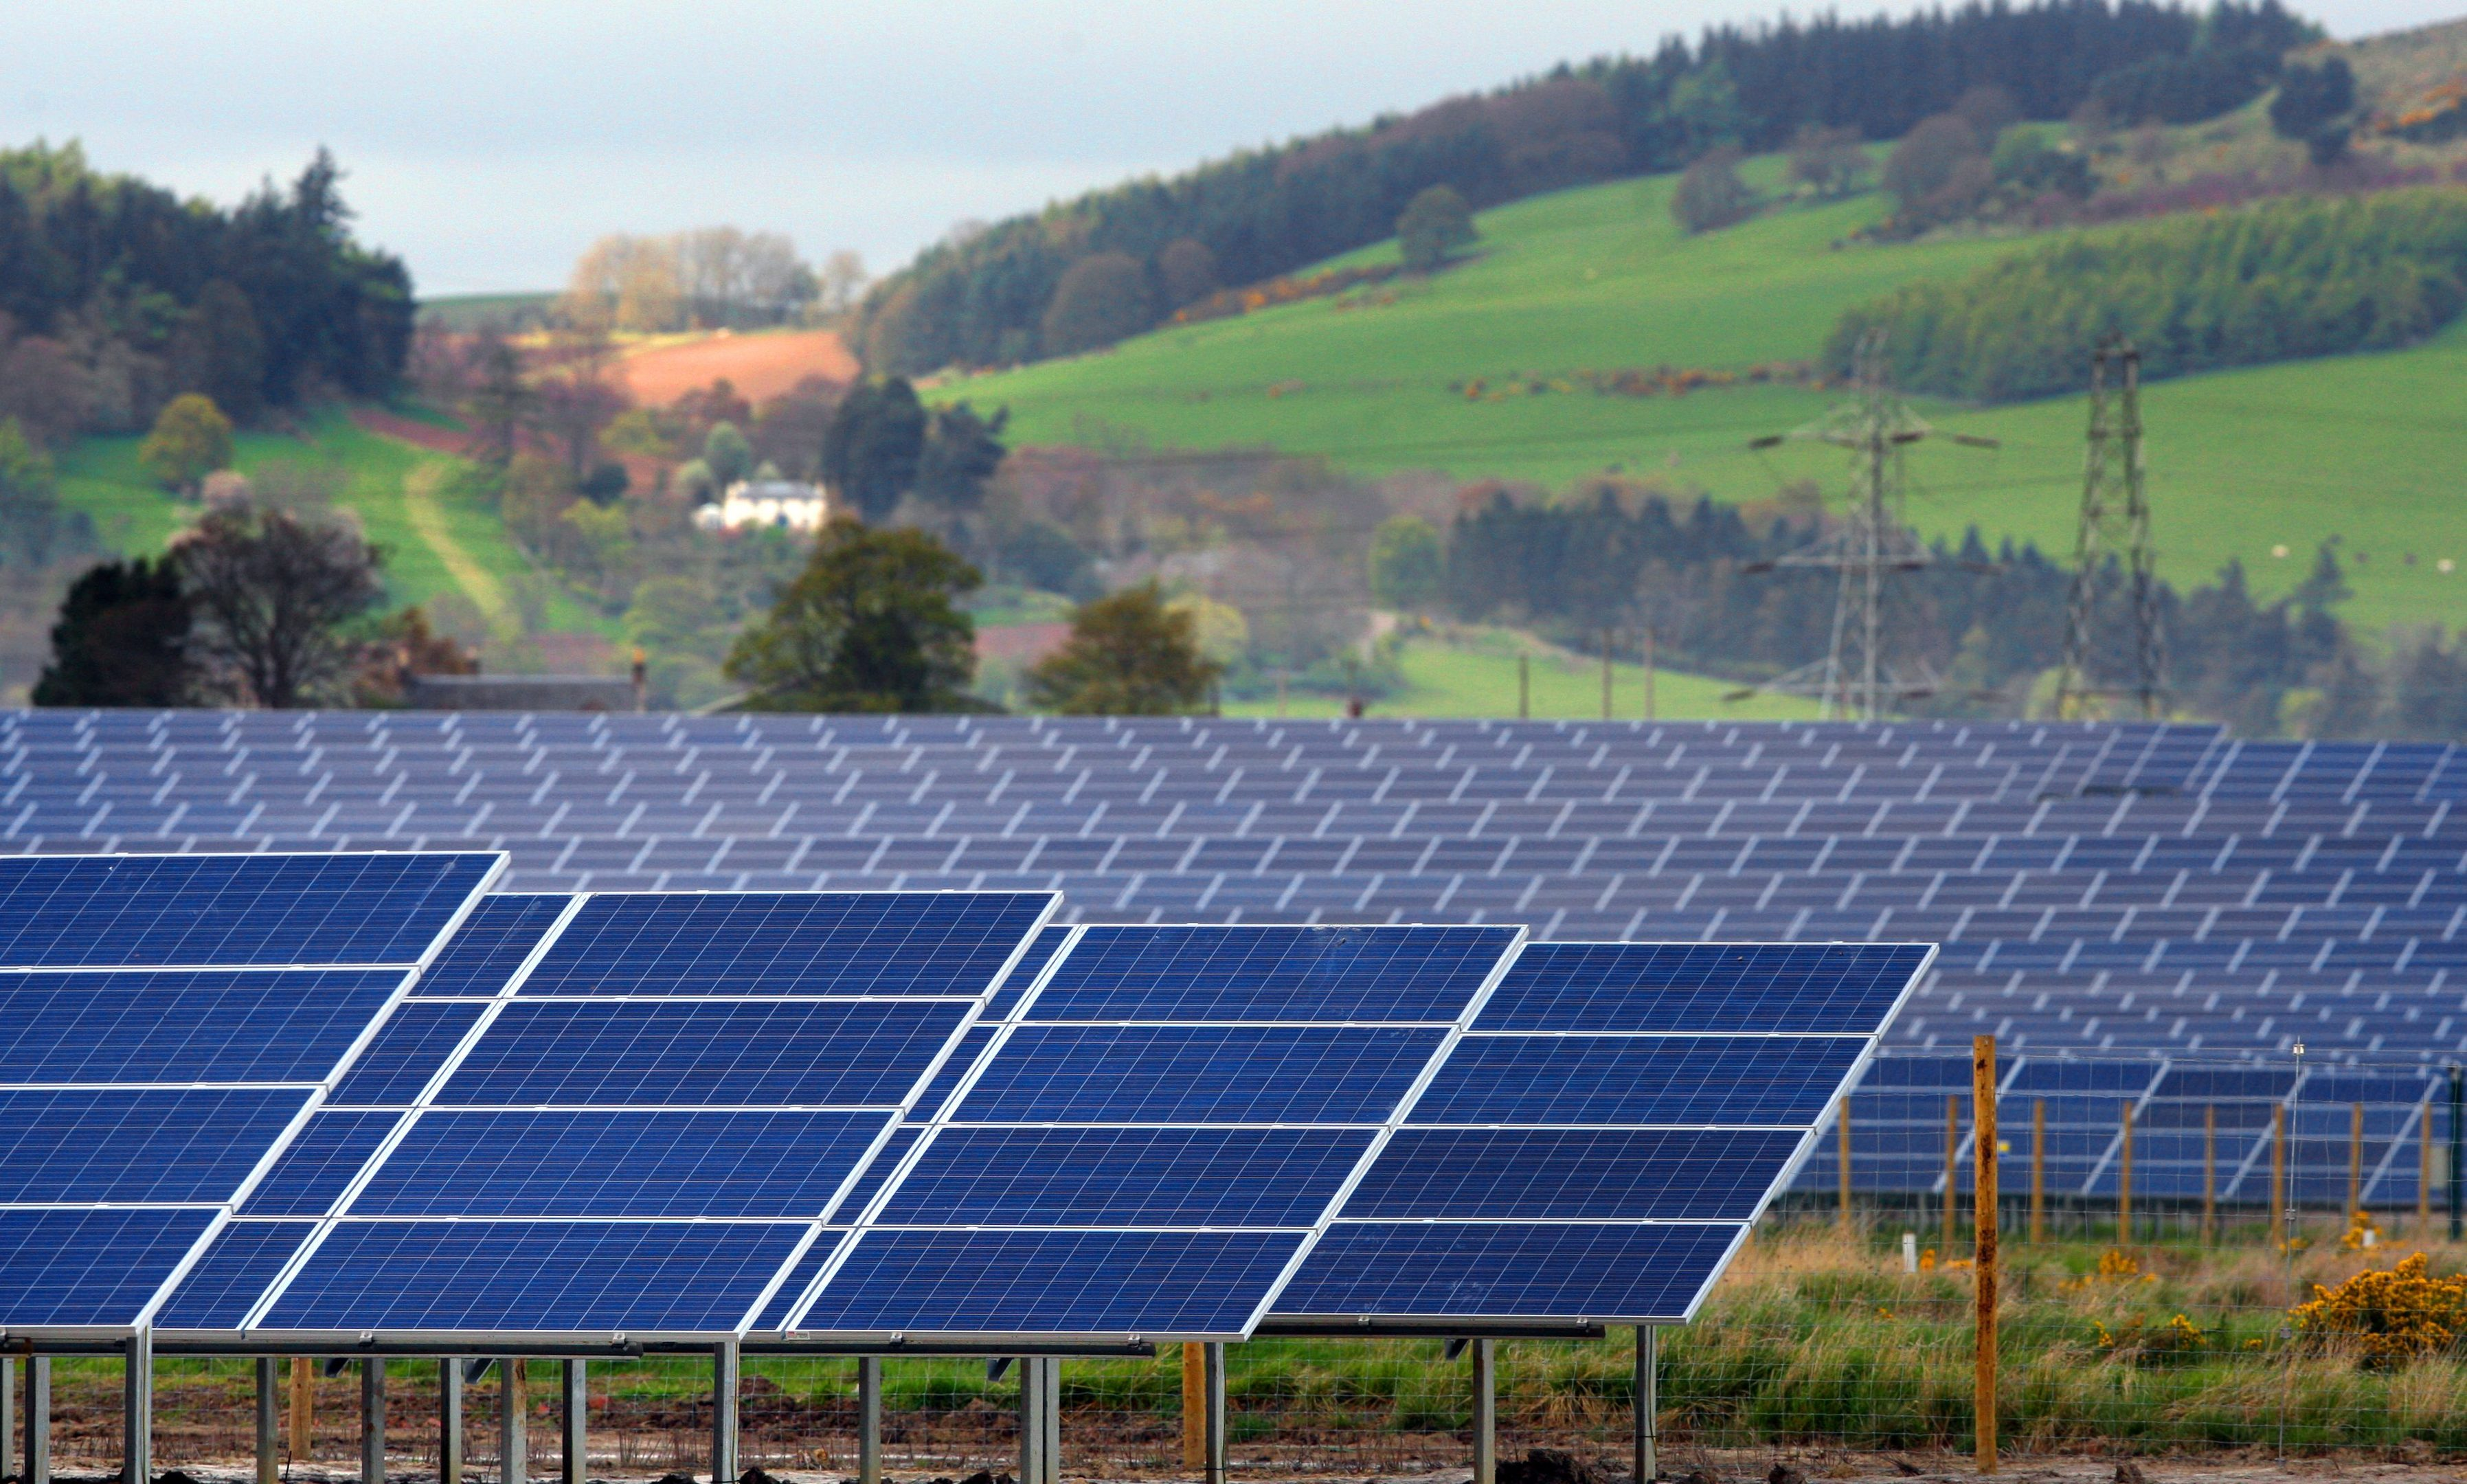 Scotland's biggest solar farm at Errol.